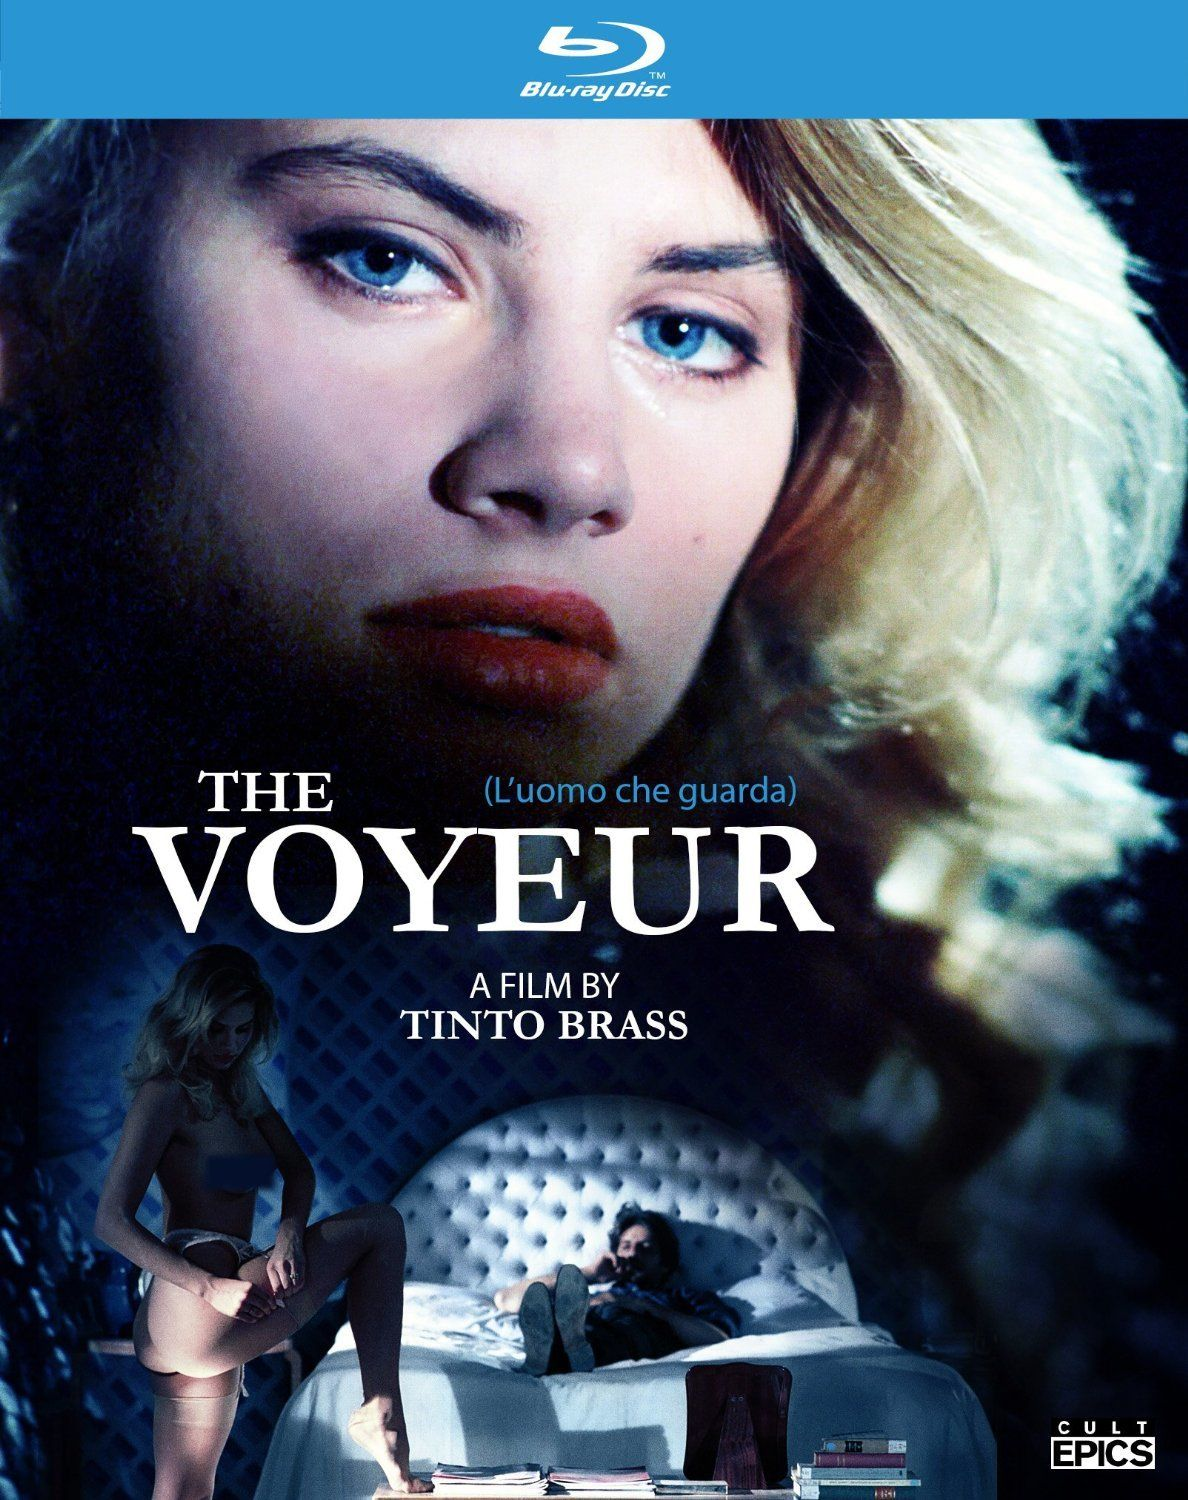 Voyeur movies pictures